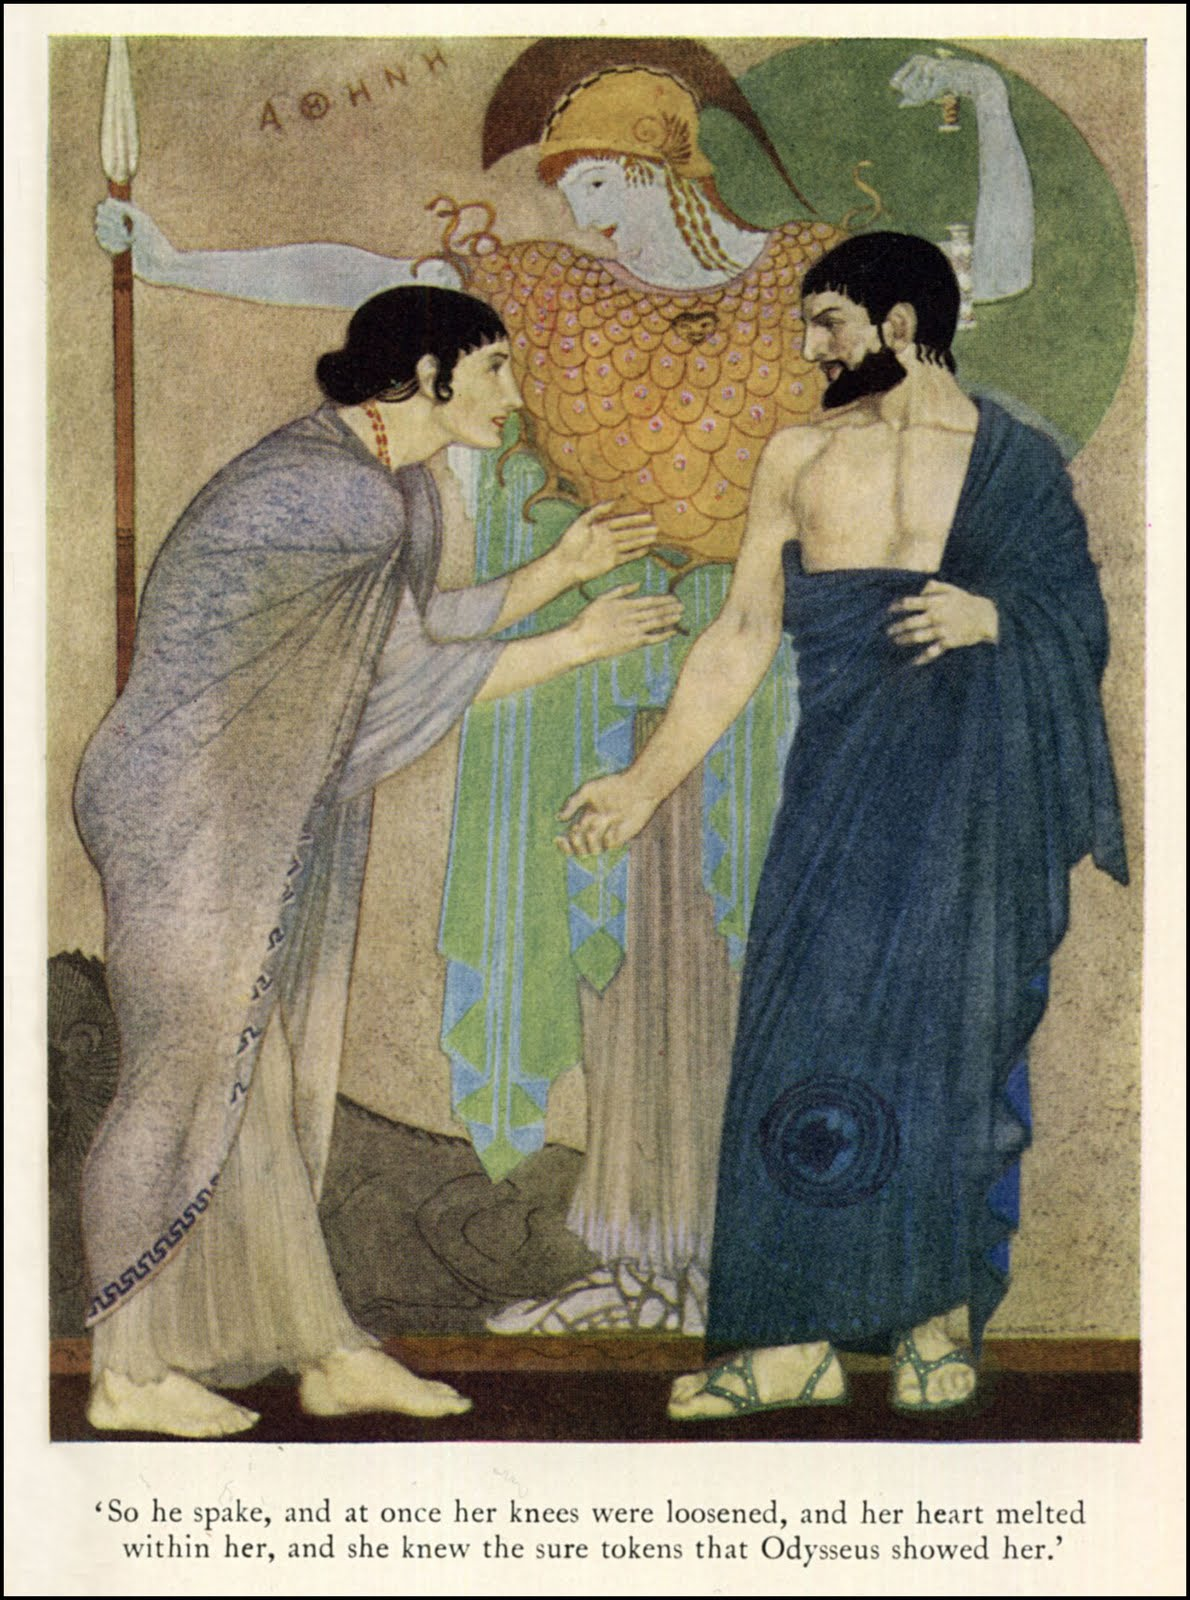 the qualities of odysseus and penelope from the odyssey applied in the princes bride